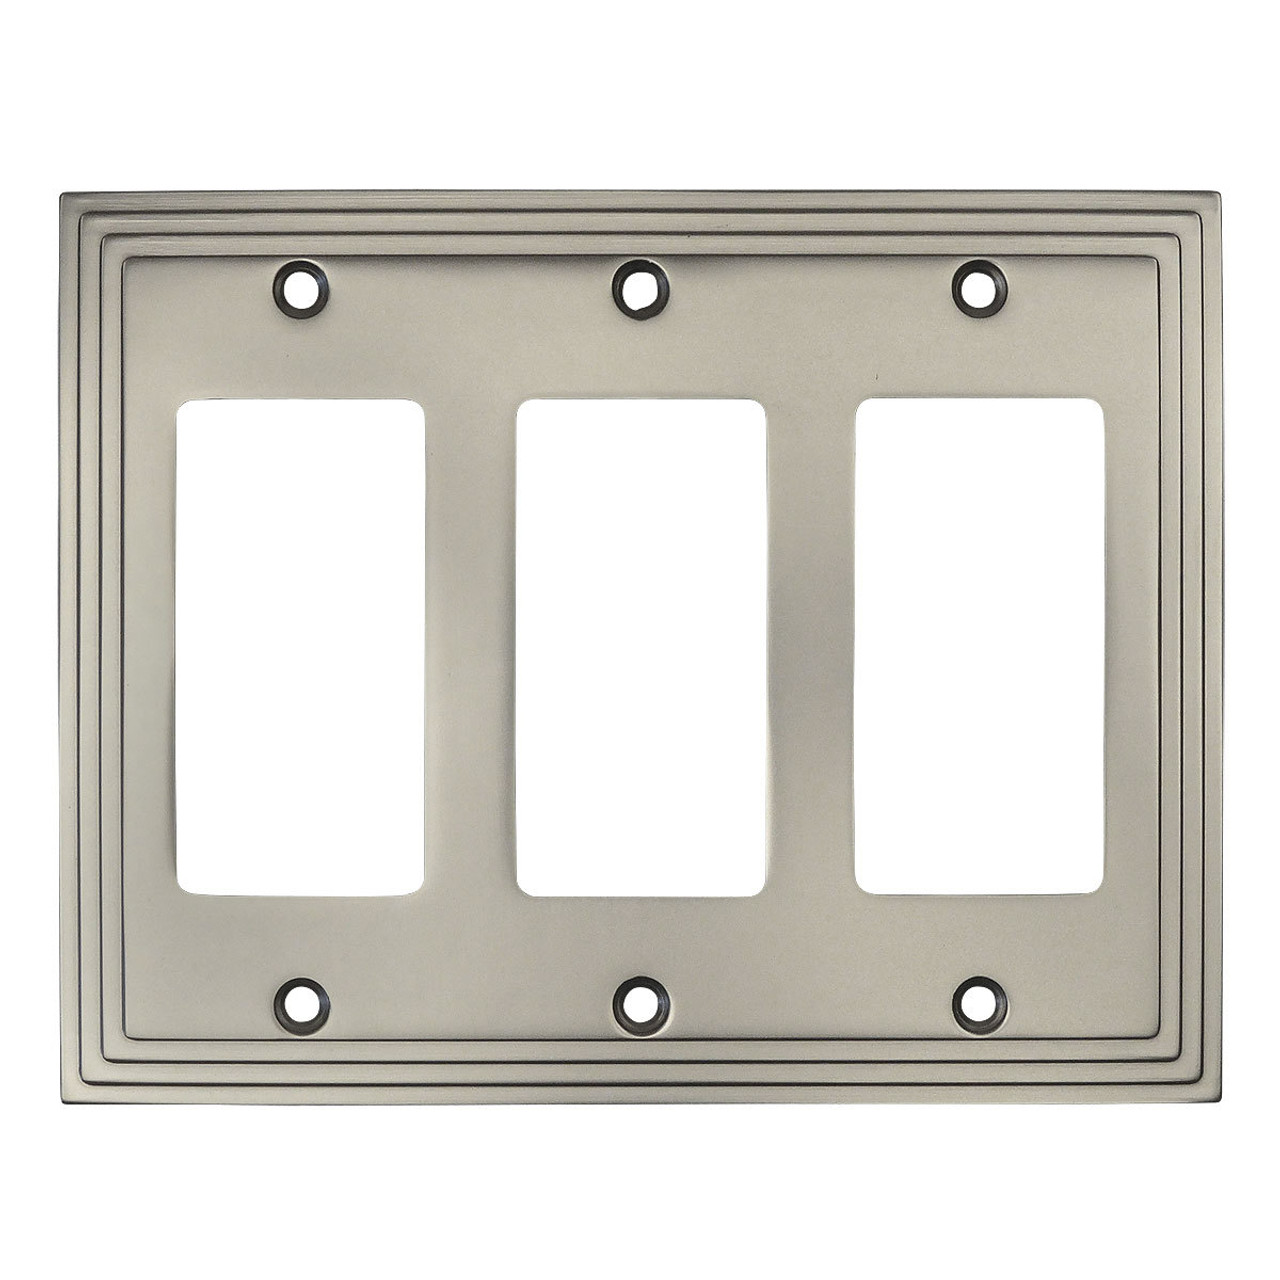 Cosmas 25084 Sn Satin Nickel Triple Gfci Decora Wall Plate